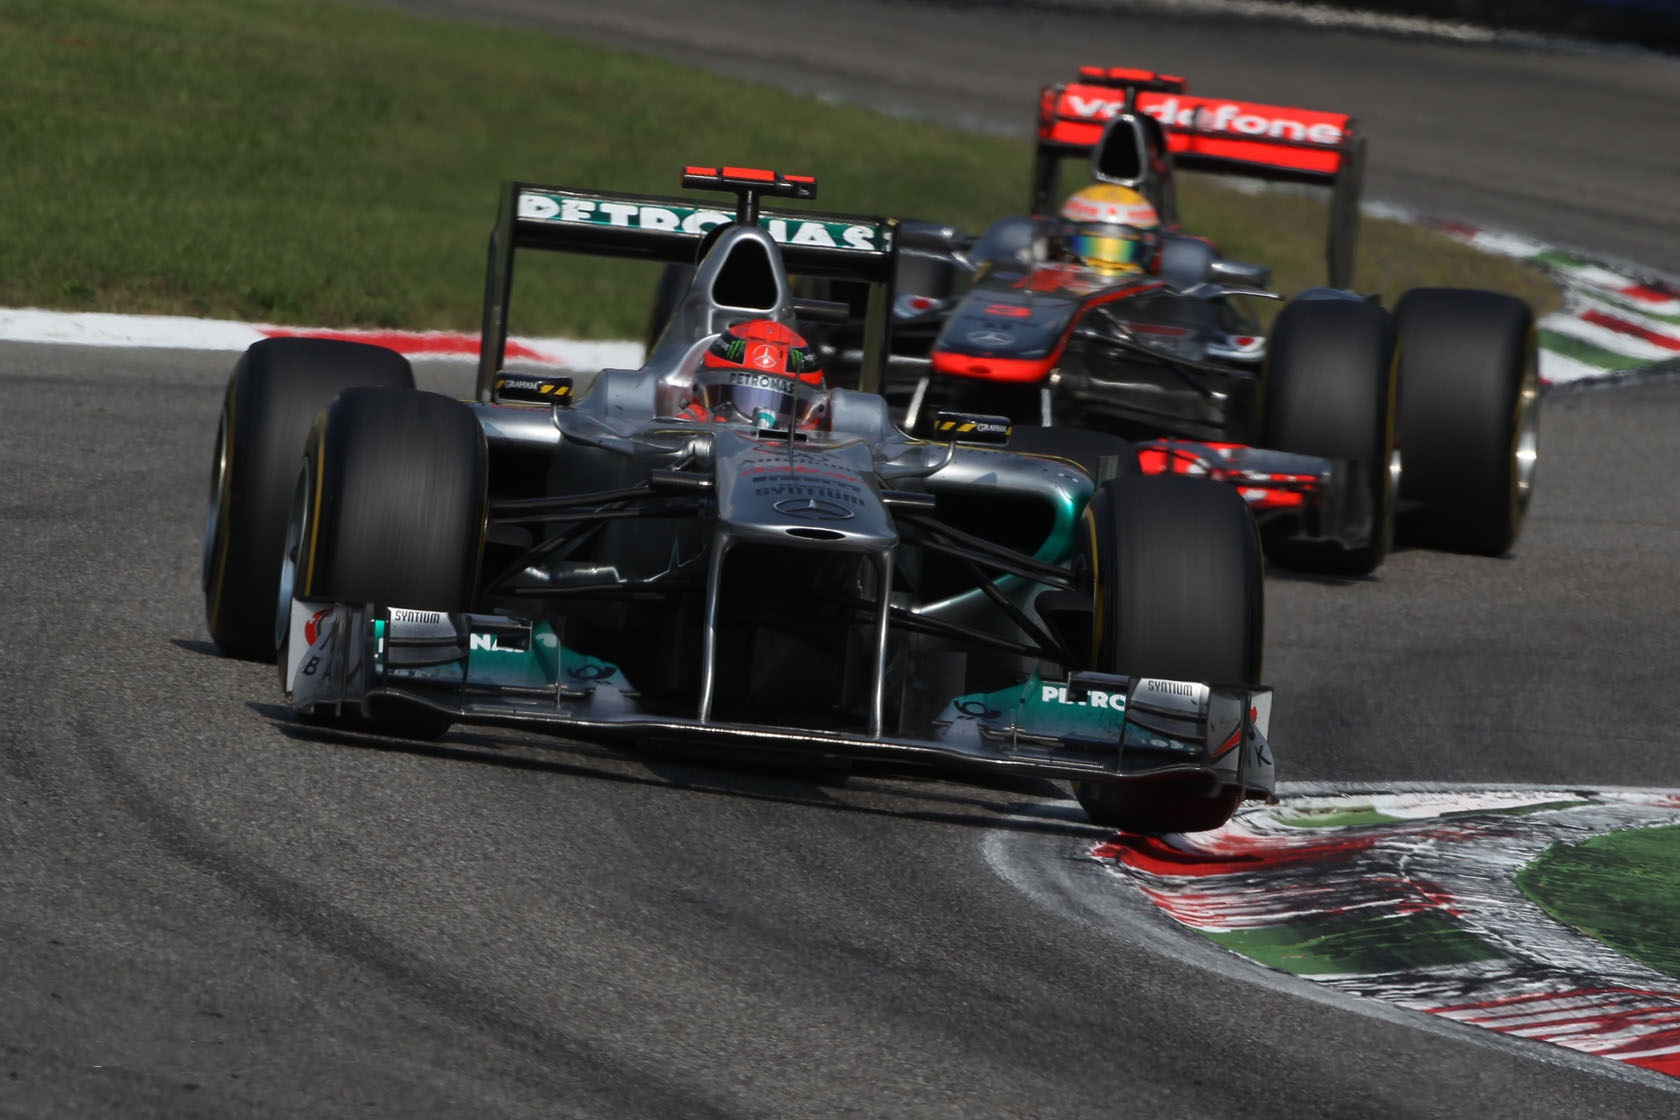 Michael Schumacher and Lewis Hamilton, Italian GP 2011.